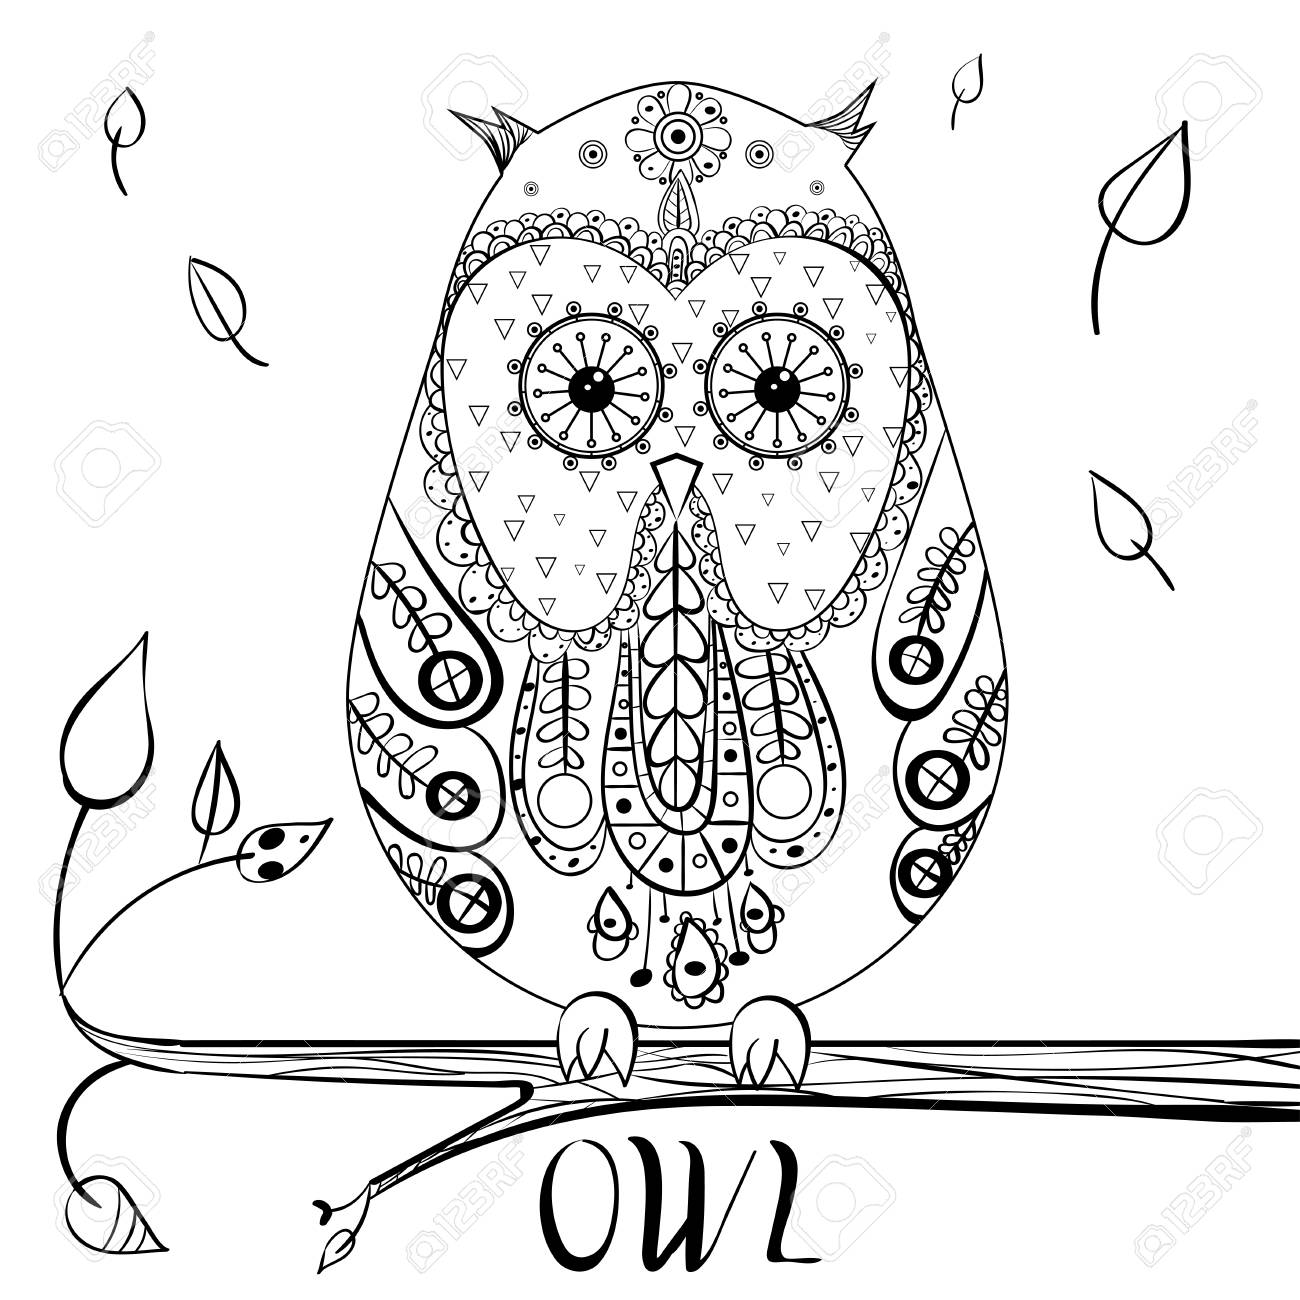 Decorative owl. Adult antistress coloring page. Black and white..